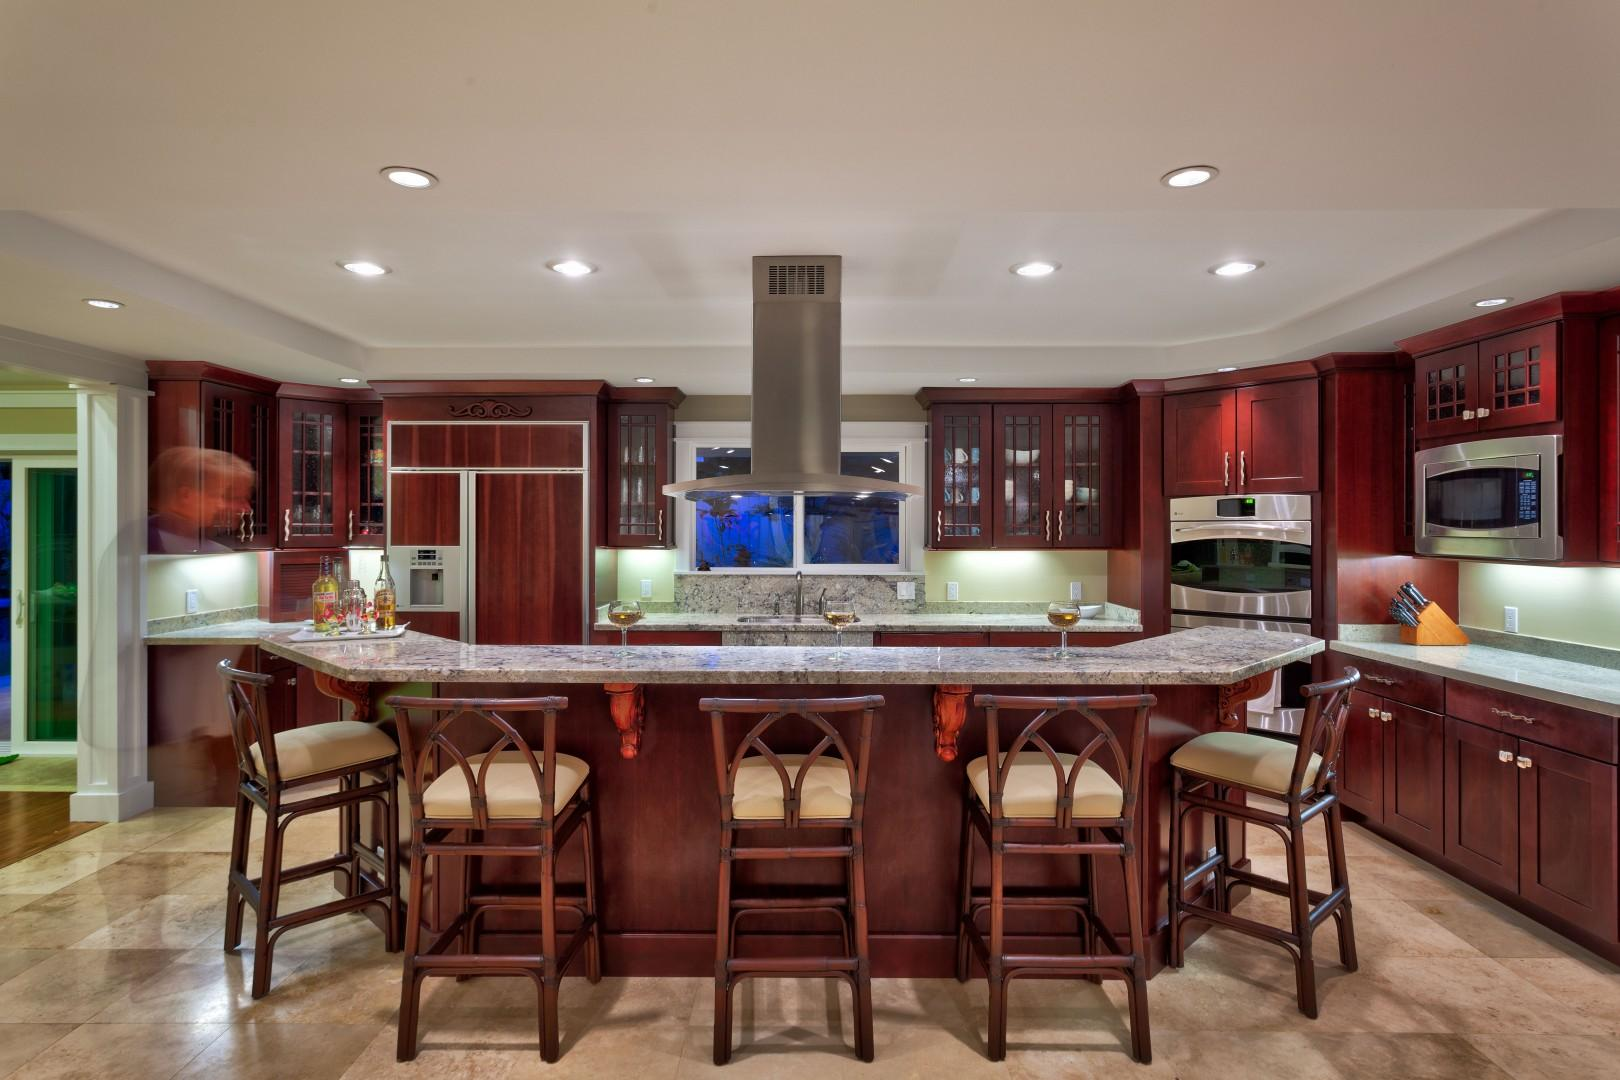 Cook up a delicious meal, all while entertaining in this open floor plan kitchen.